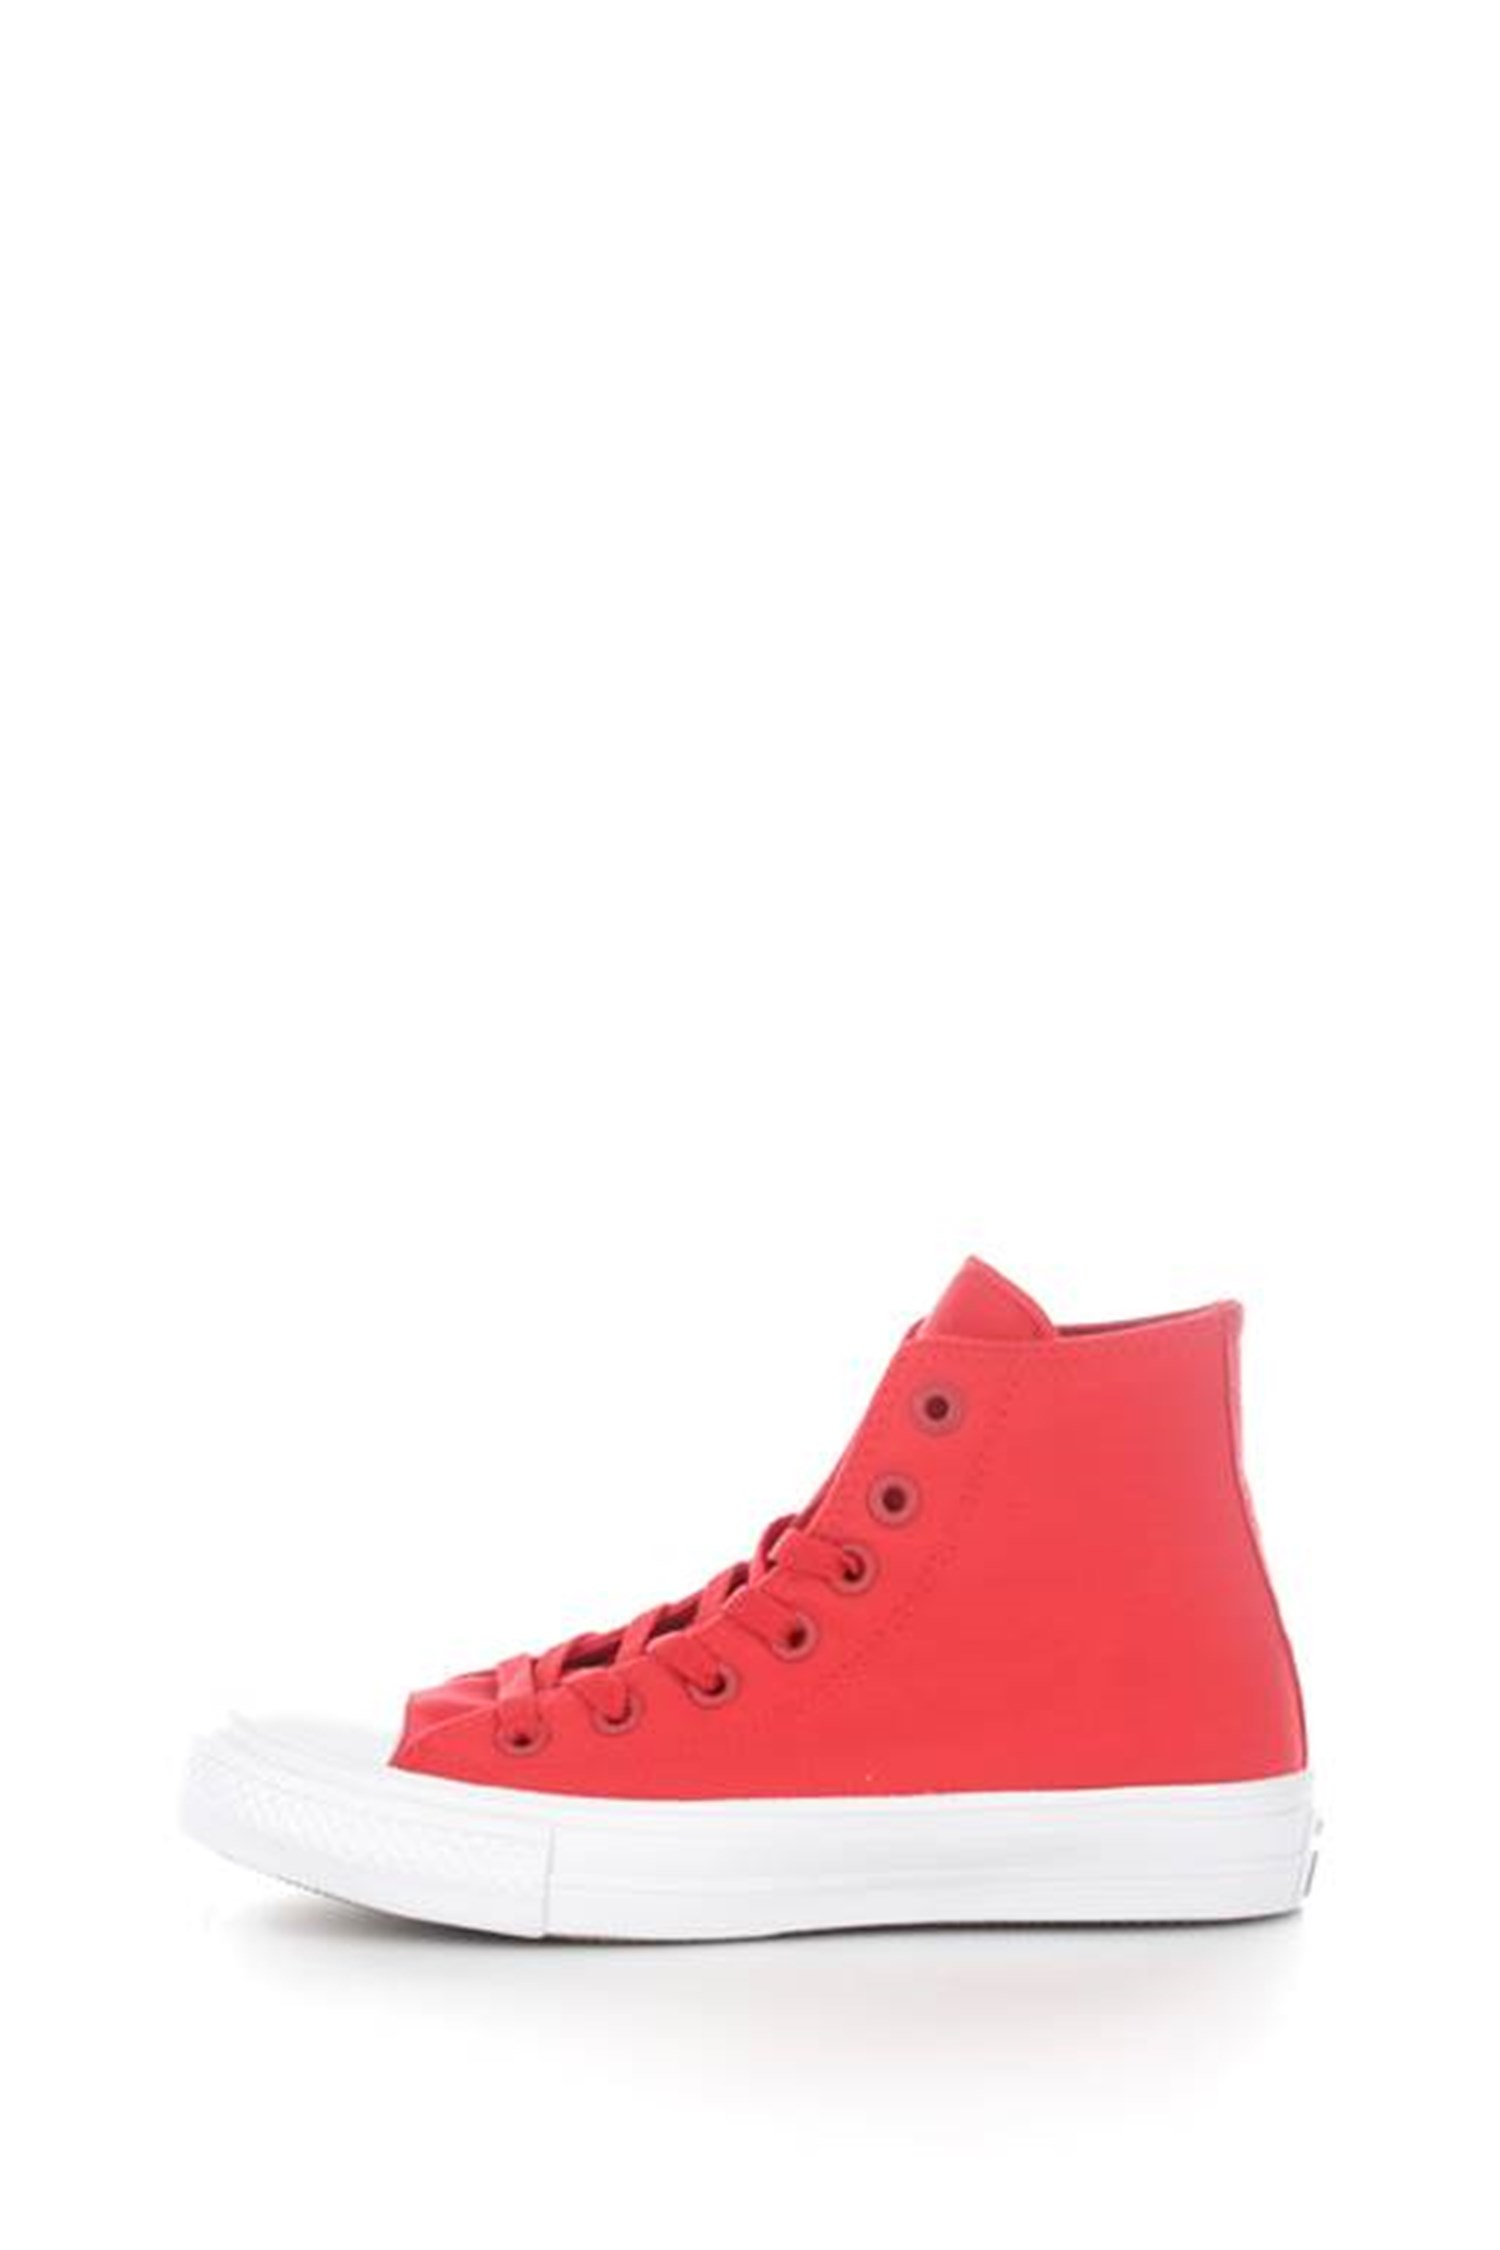 Converse Shoes Man high RED 151119C